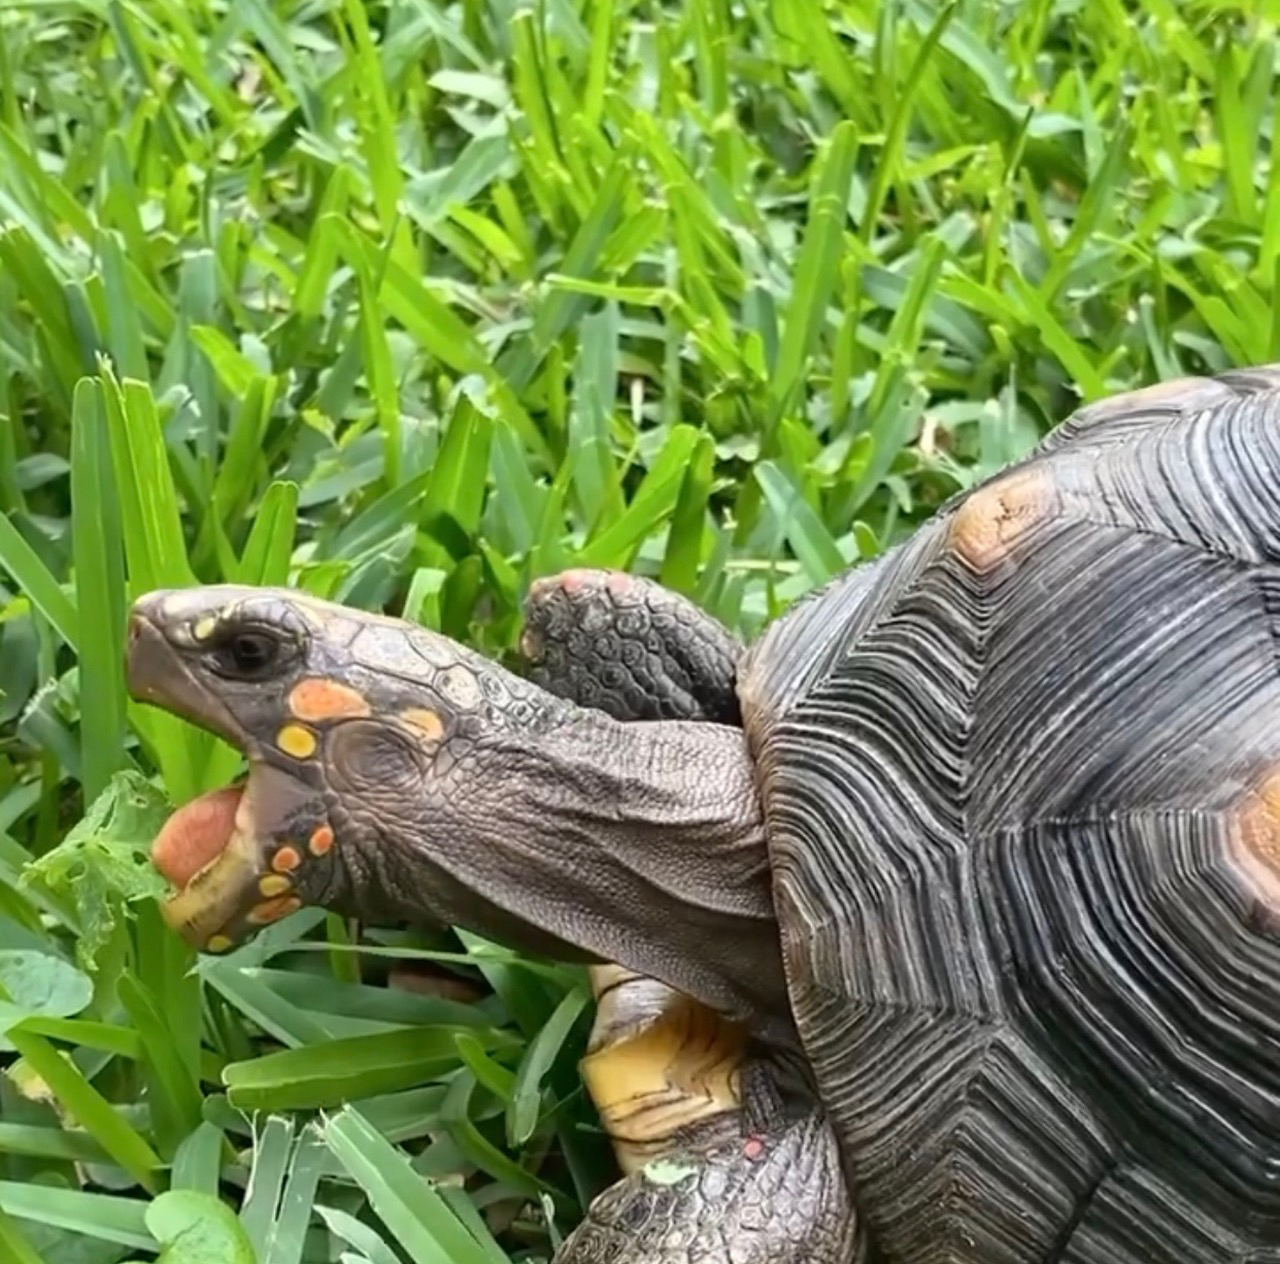 redfoot tortoise eats grass